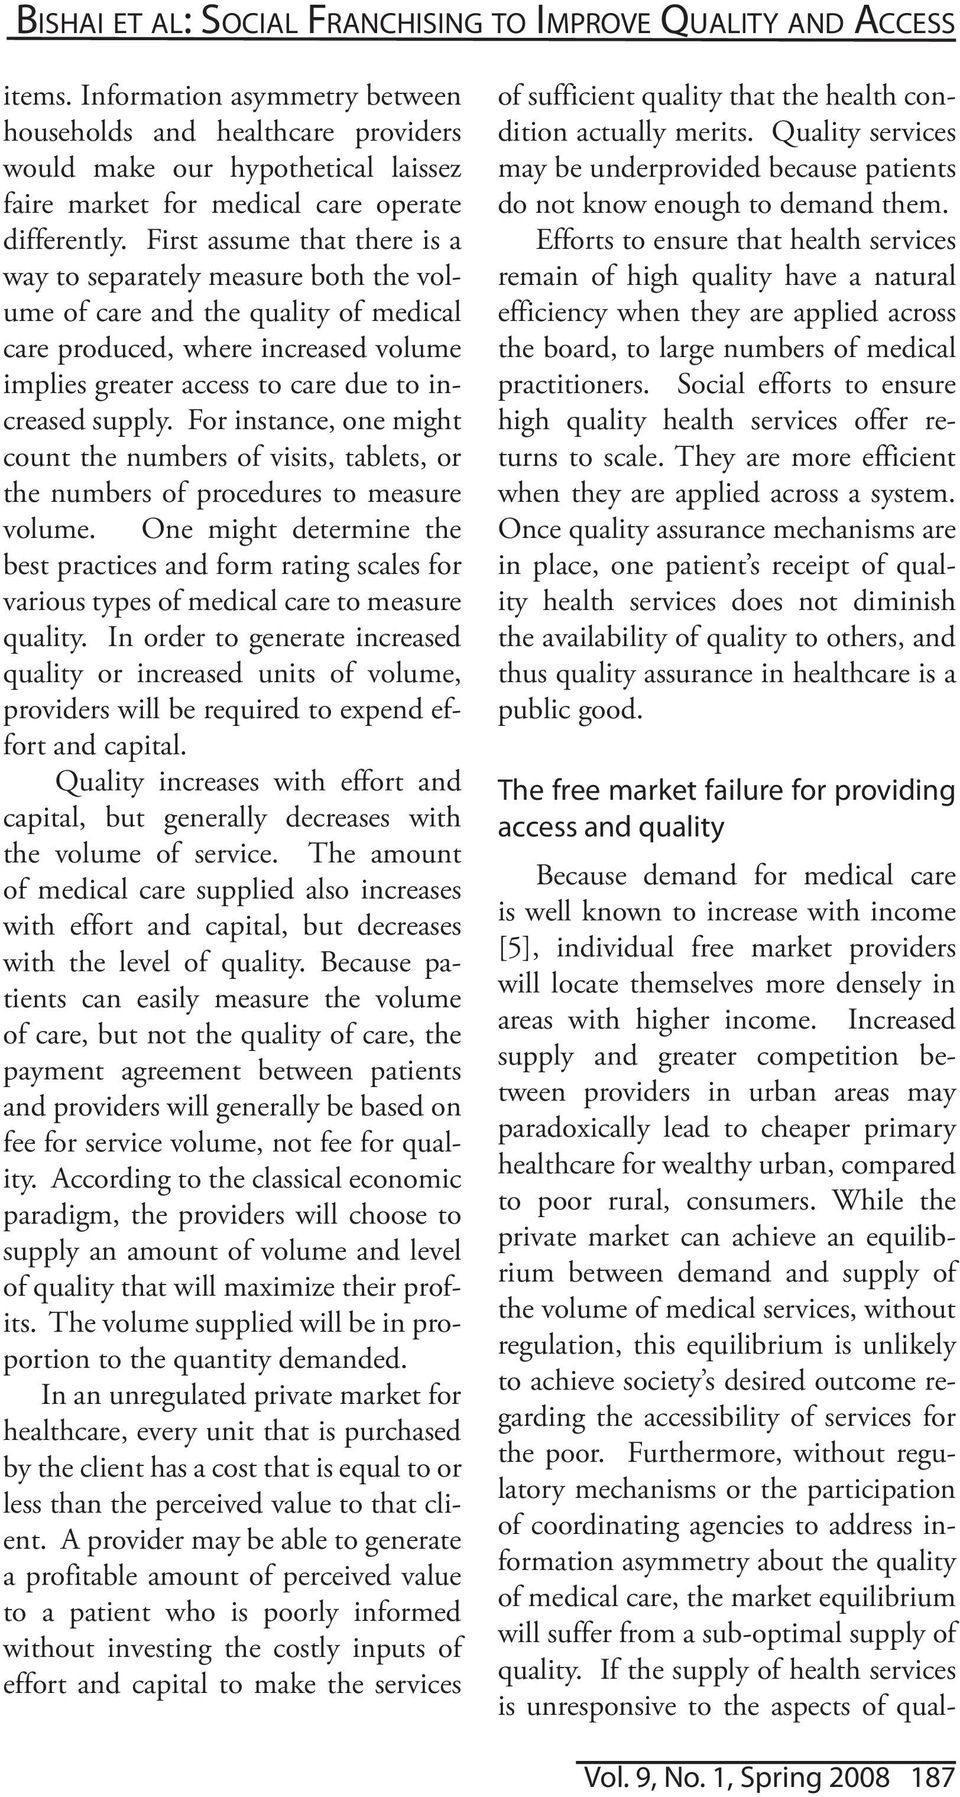 First assume that there is a way to separately measure both the volume of care and the quality of medical care produced, where increased volume implies greater access to care due to increased supply.